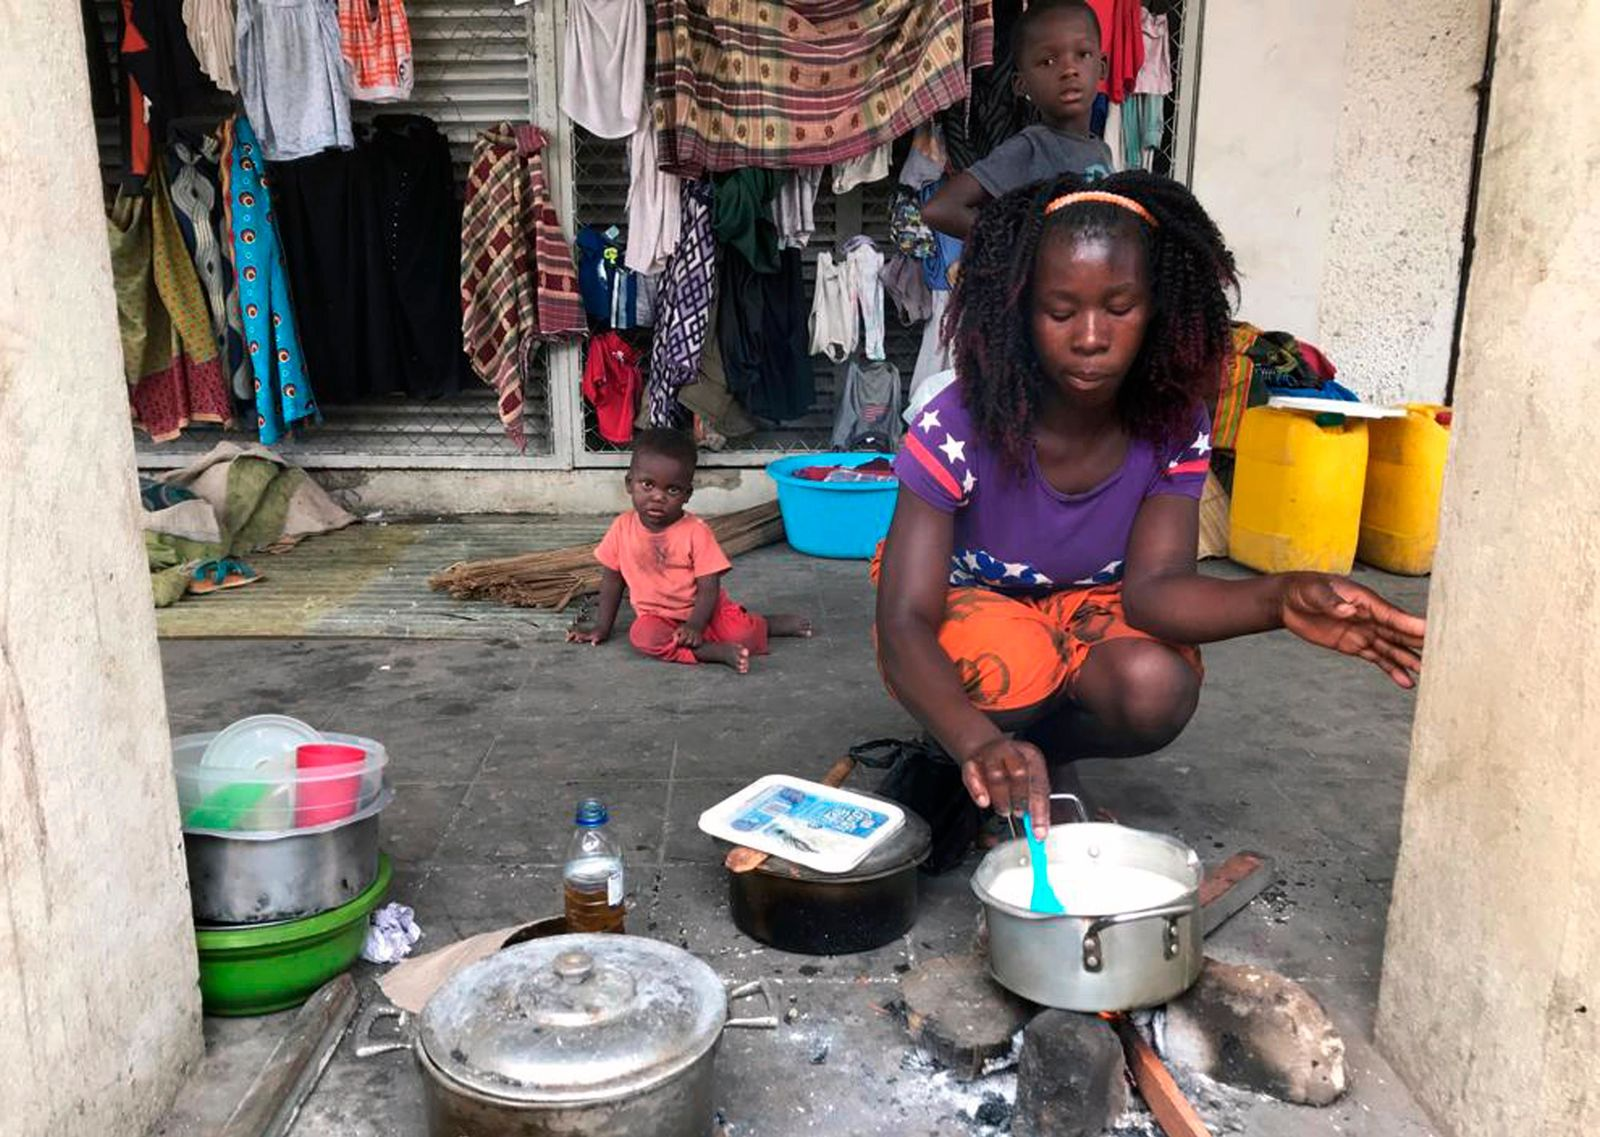 Marta Ben prepares food on a sidewalk after her home was destroyed in Beira, Mozambique, Friday March 22, 2019. . (AP Photo/Cara Anna)